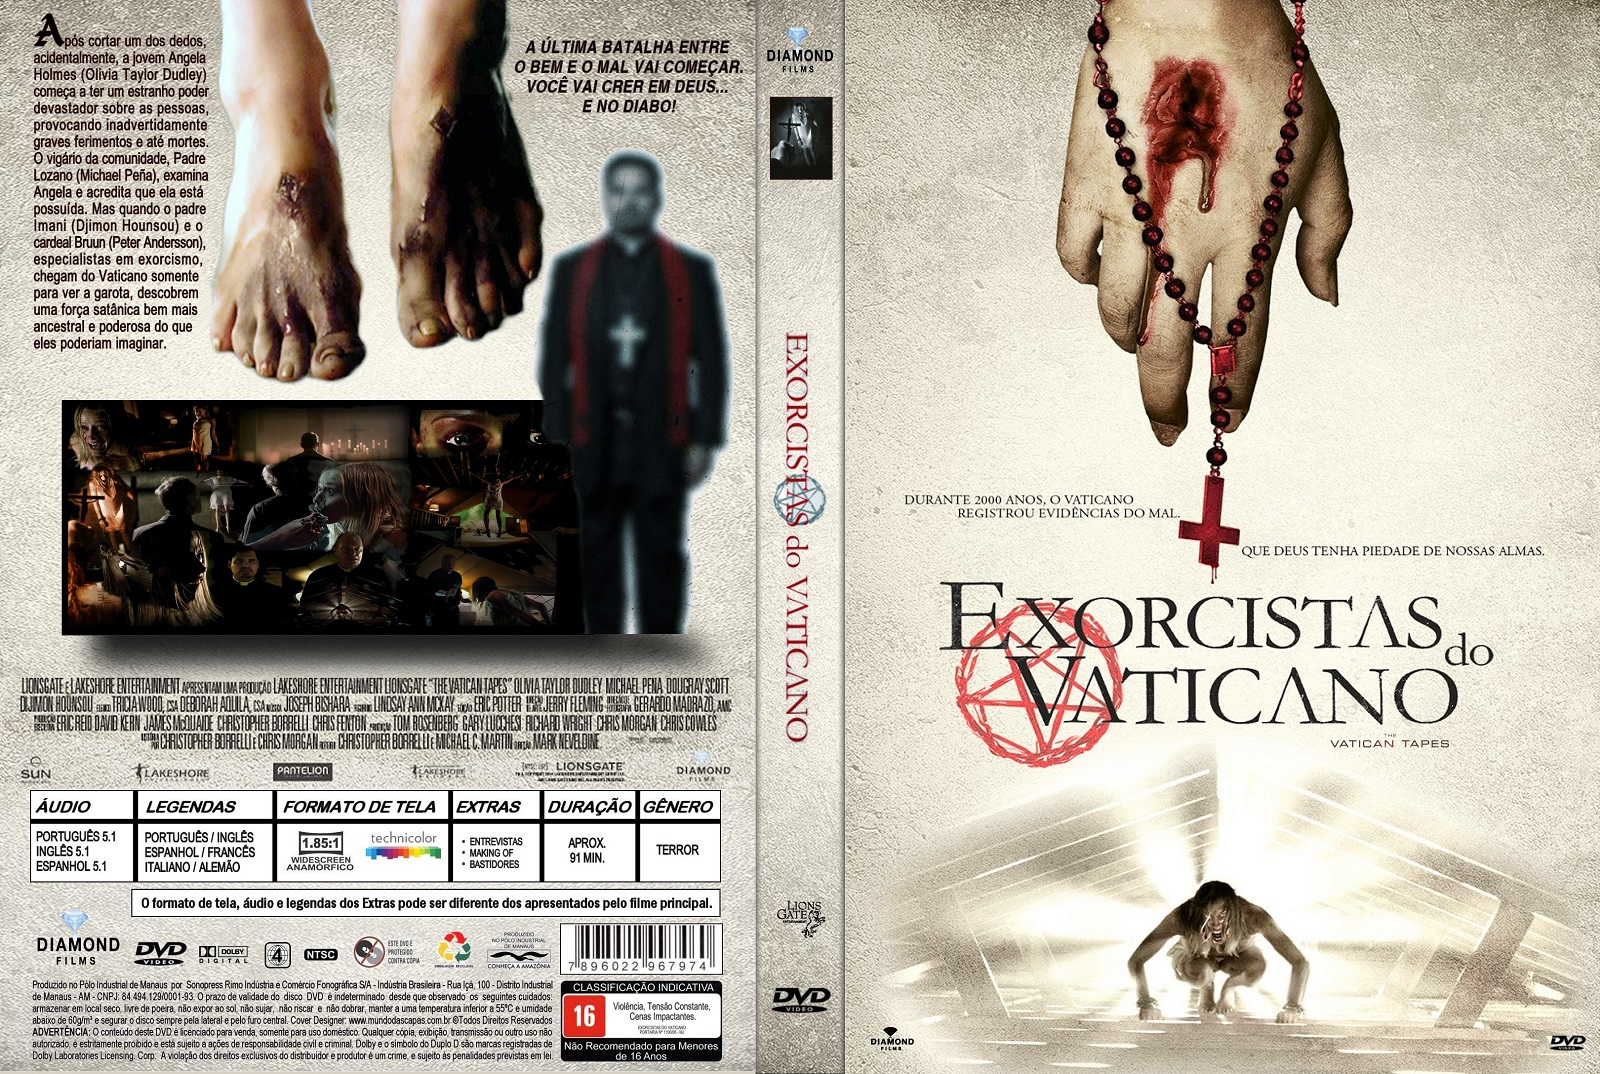 Download Exorcistas do Vaticano BDRip XviD Dual Áudio Exorcistas 2BDo 2Bvaticano 2B  2BCapa 2BFilme 2BDVD